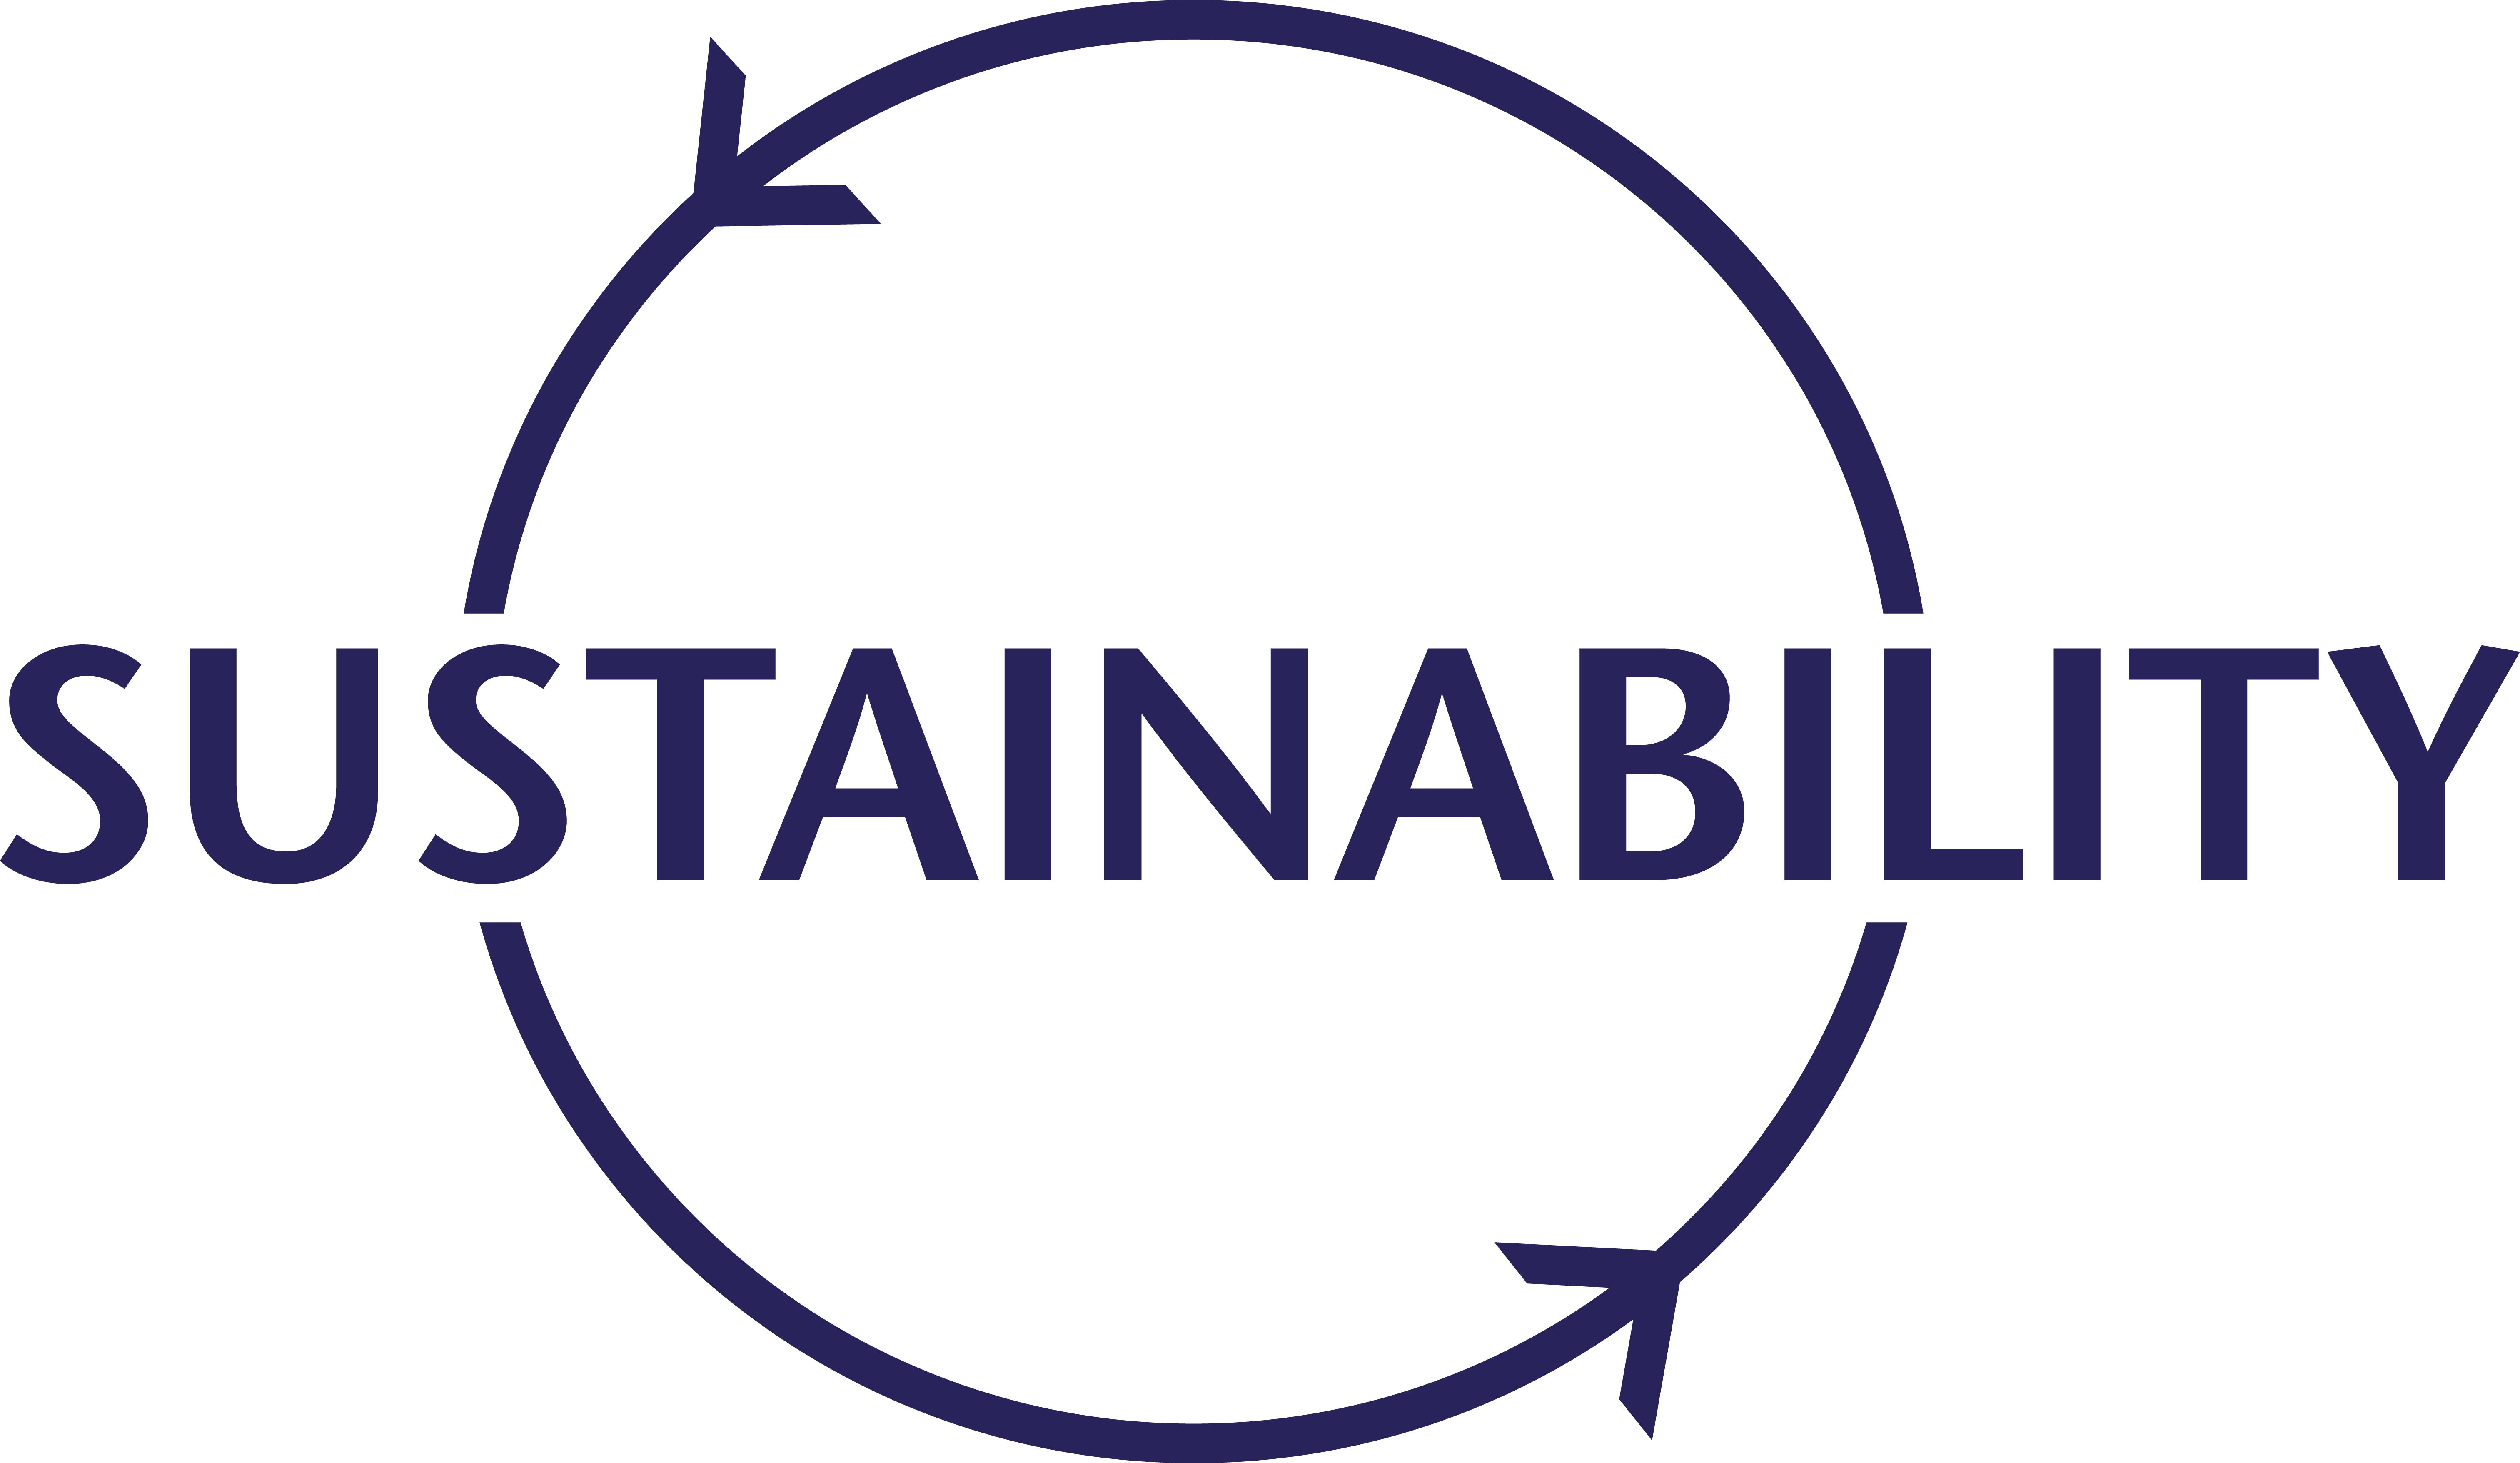 Sustainability BLUE